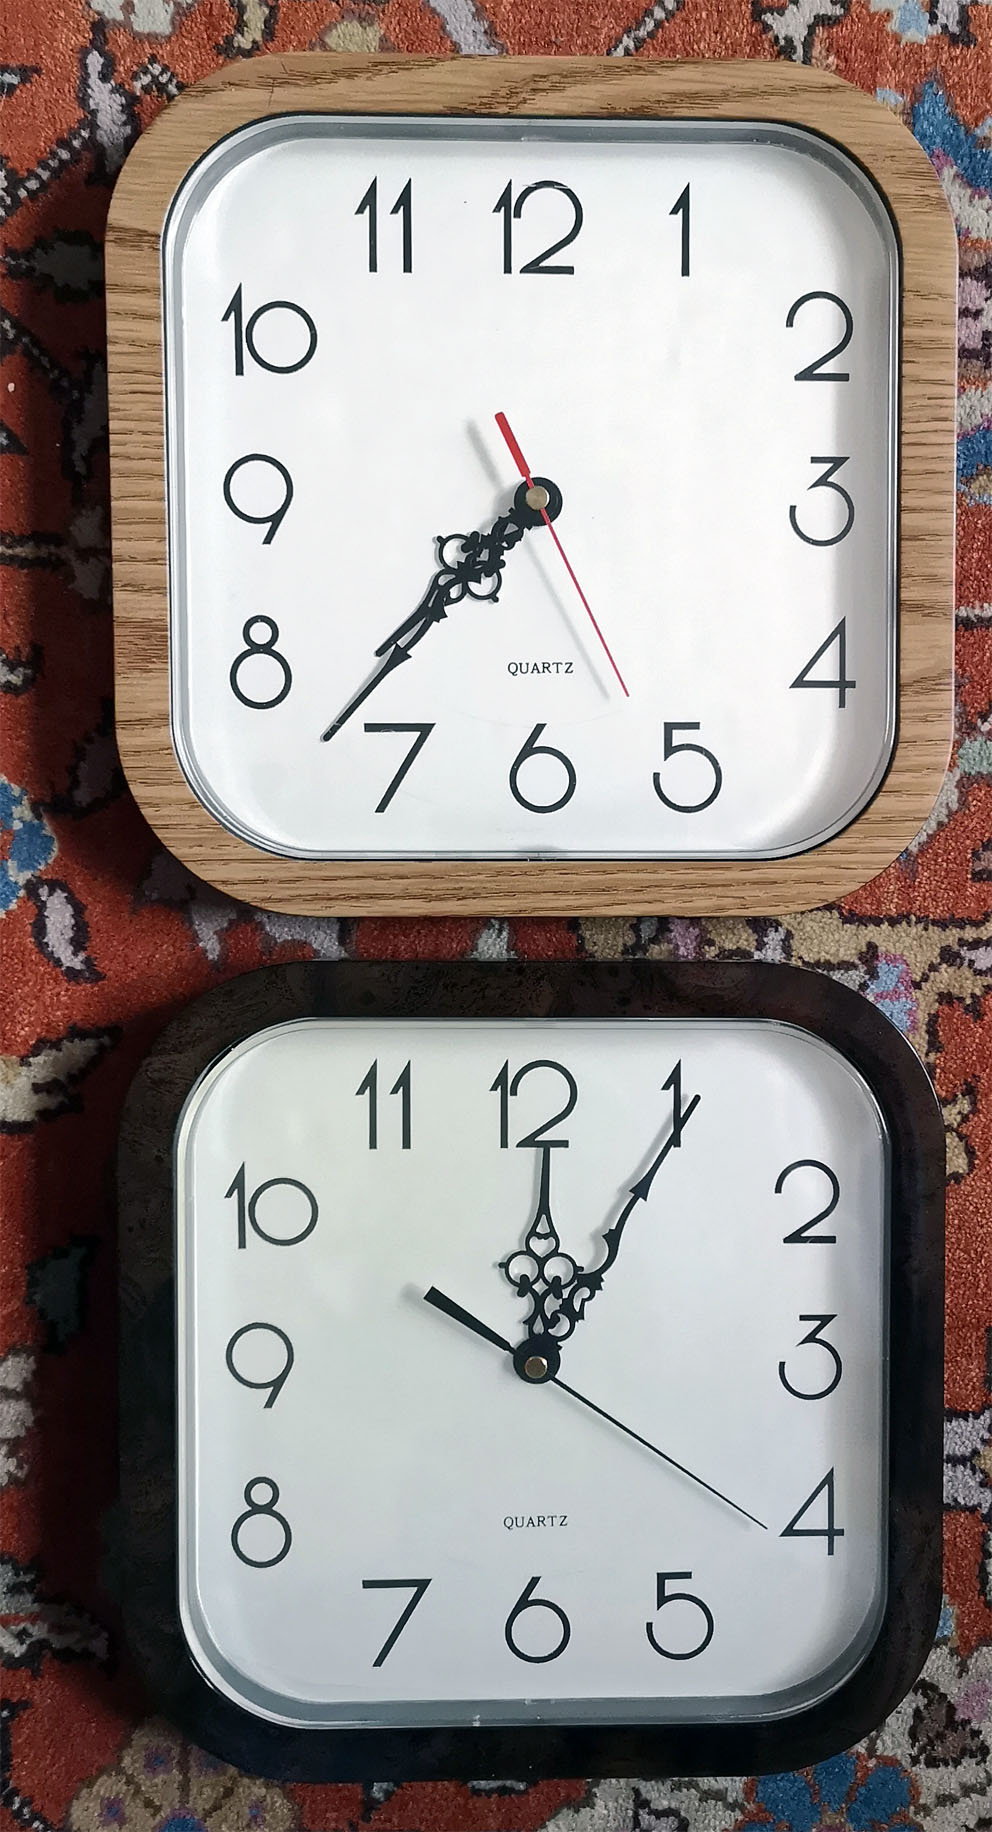 Photo don objet -Horloges murales